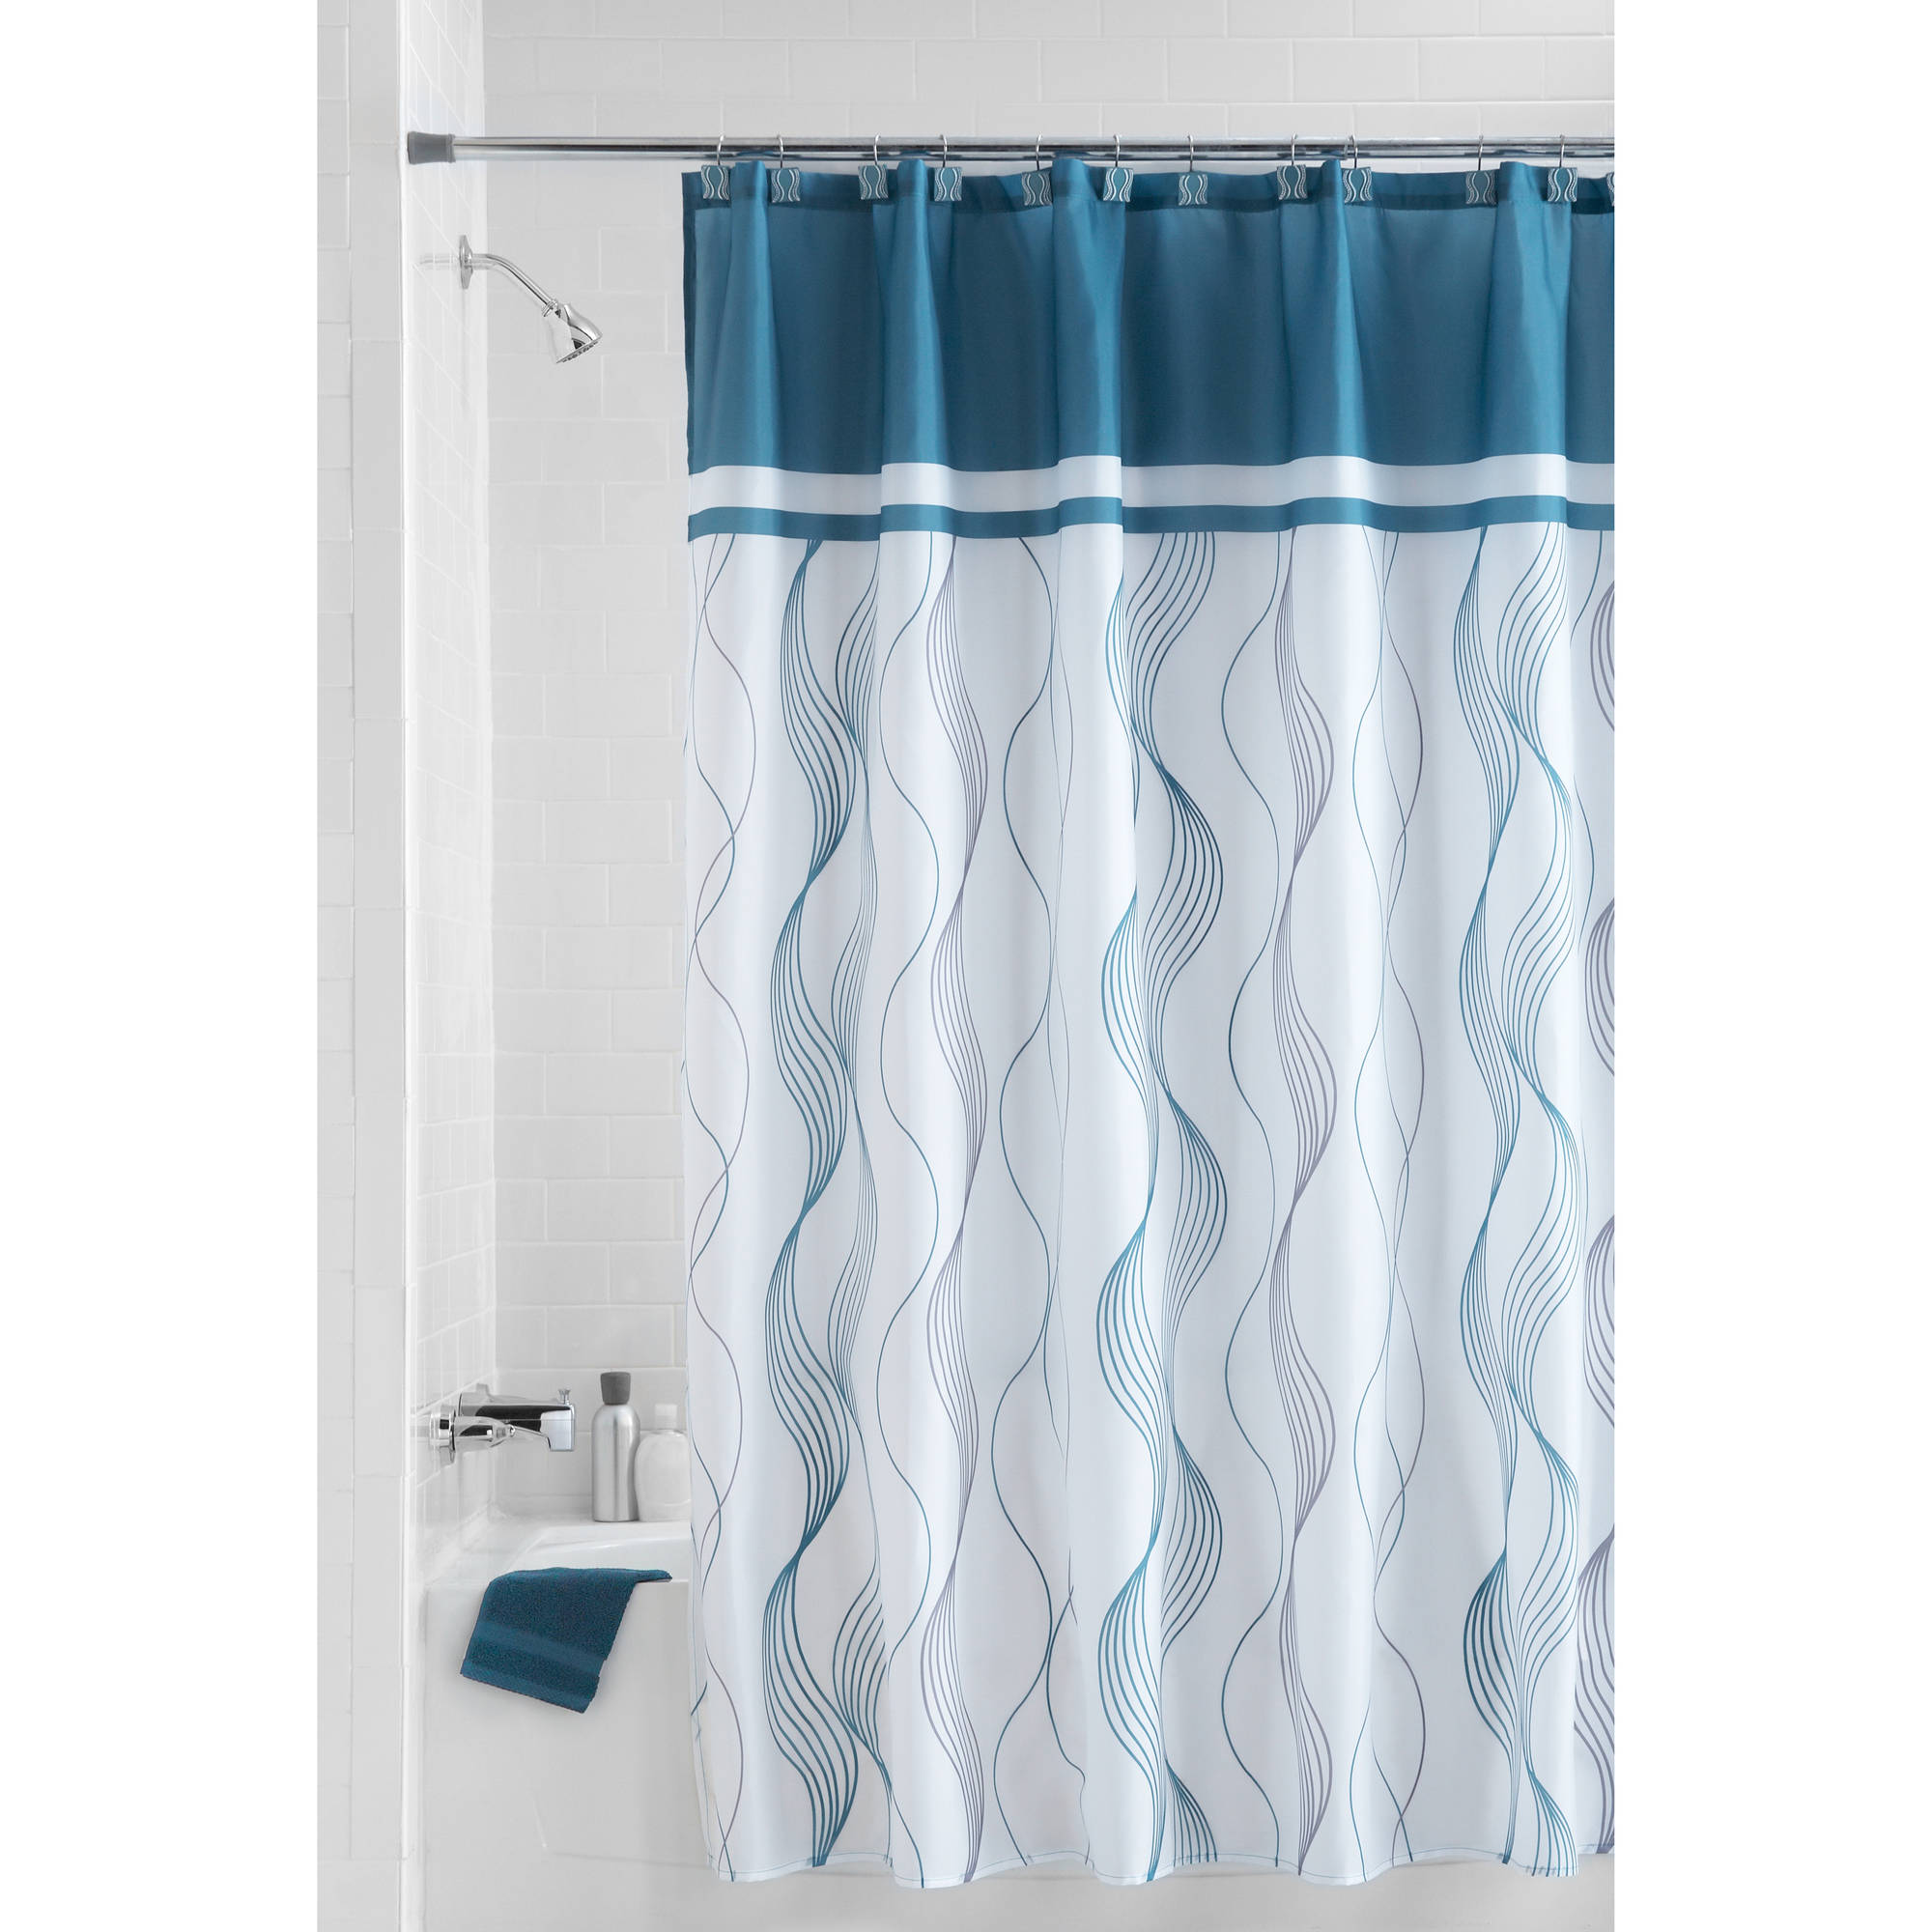 r nongzi fiberglass one stall piece shower curtains co stalls